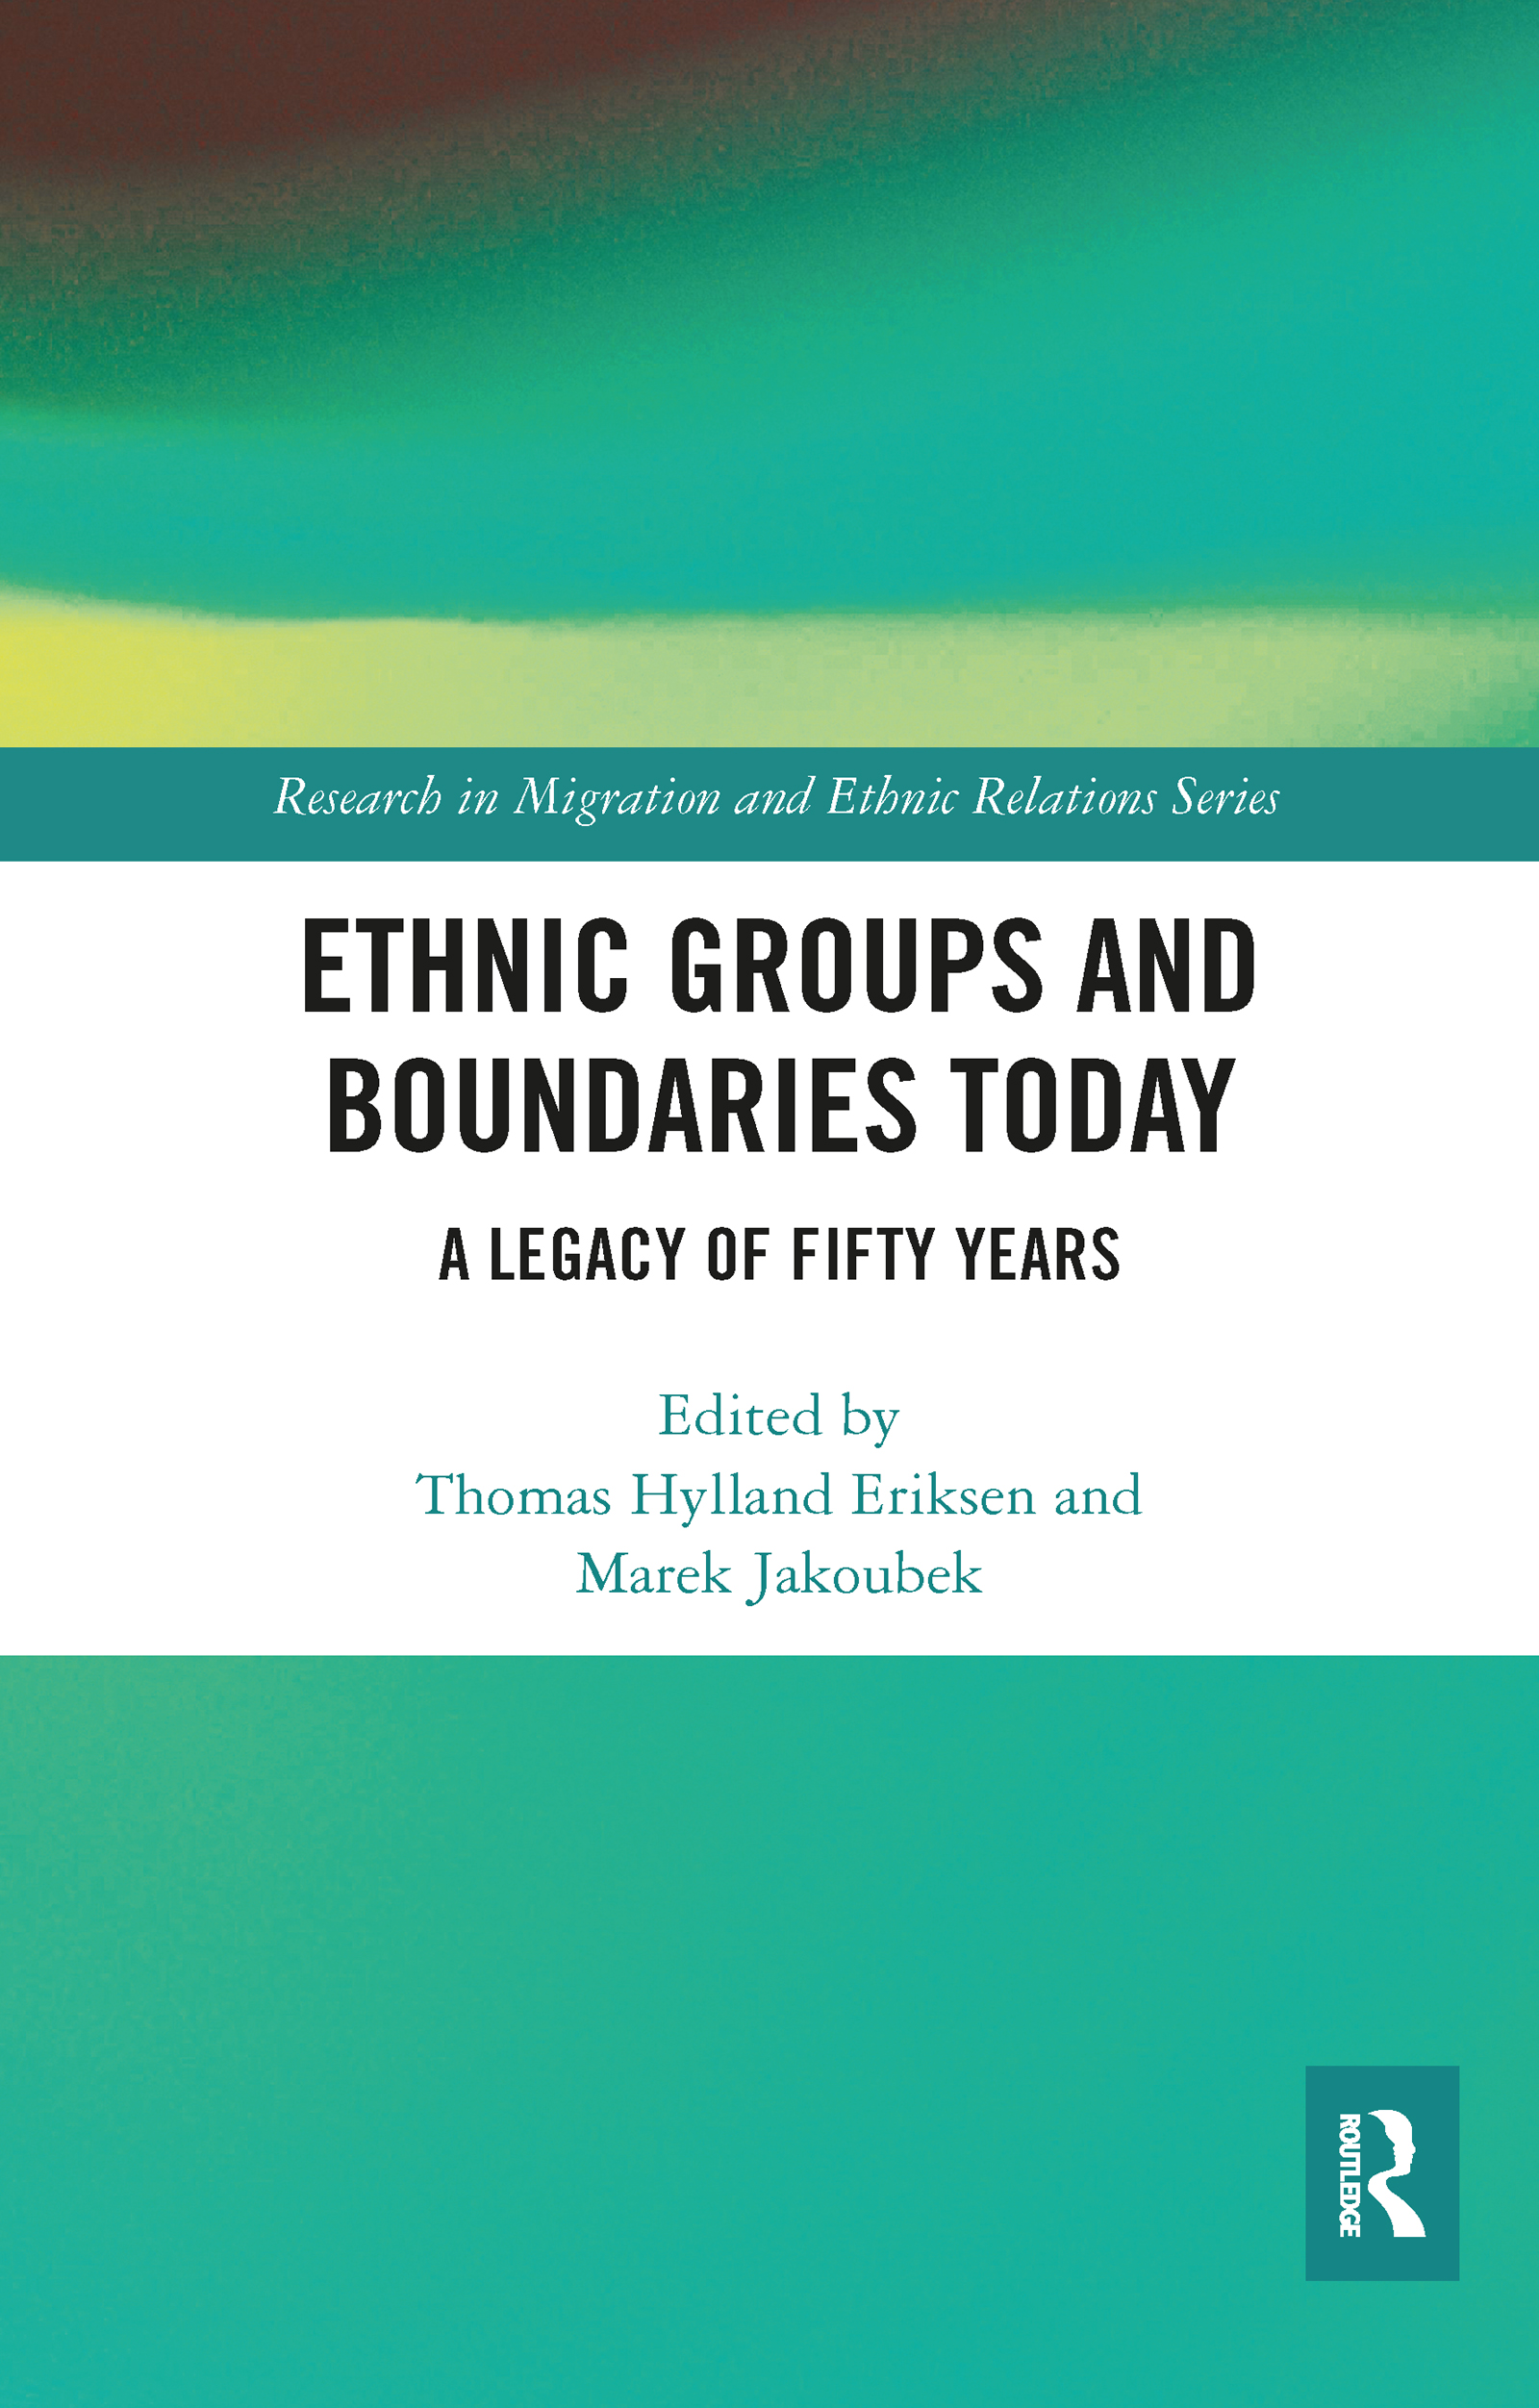 Ethnic Groups and Boundaries Today